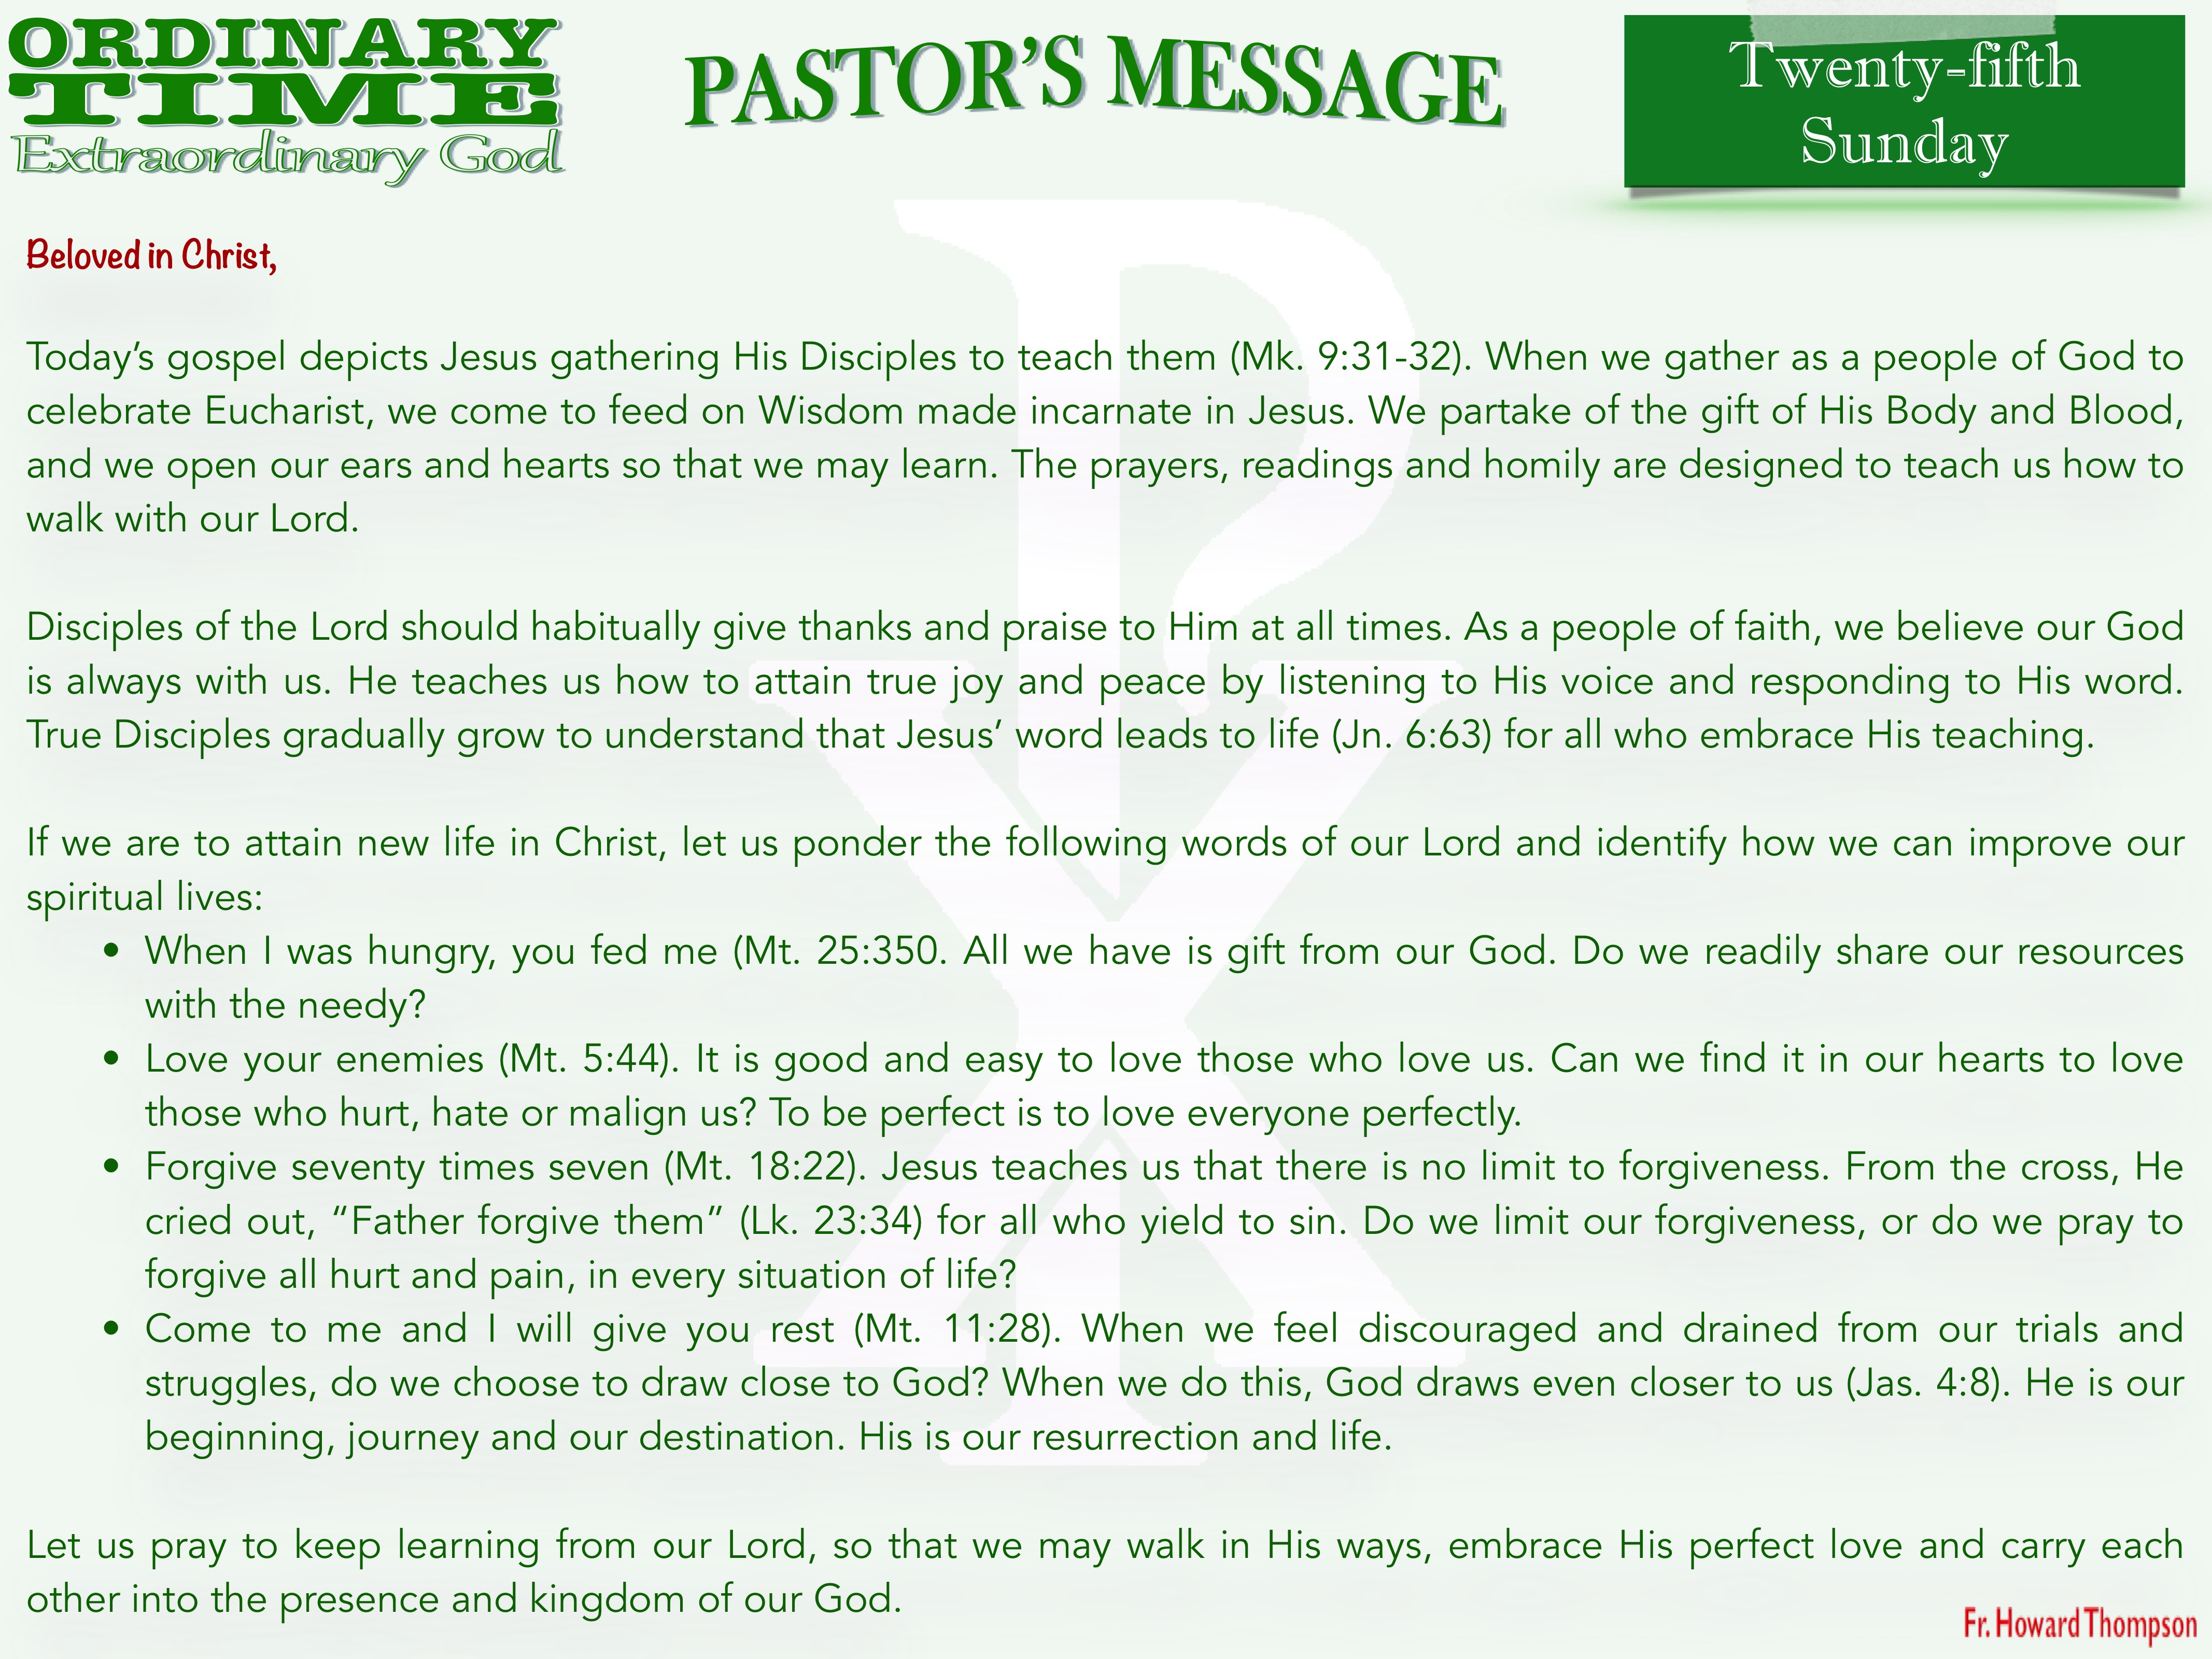 Pastor's Message - 31 Twenty-fifth Sunda